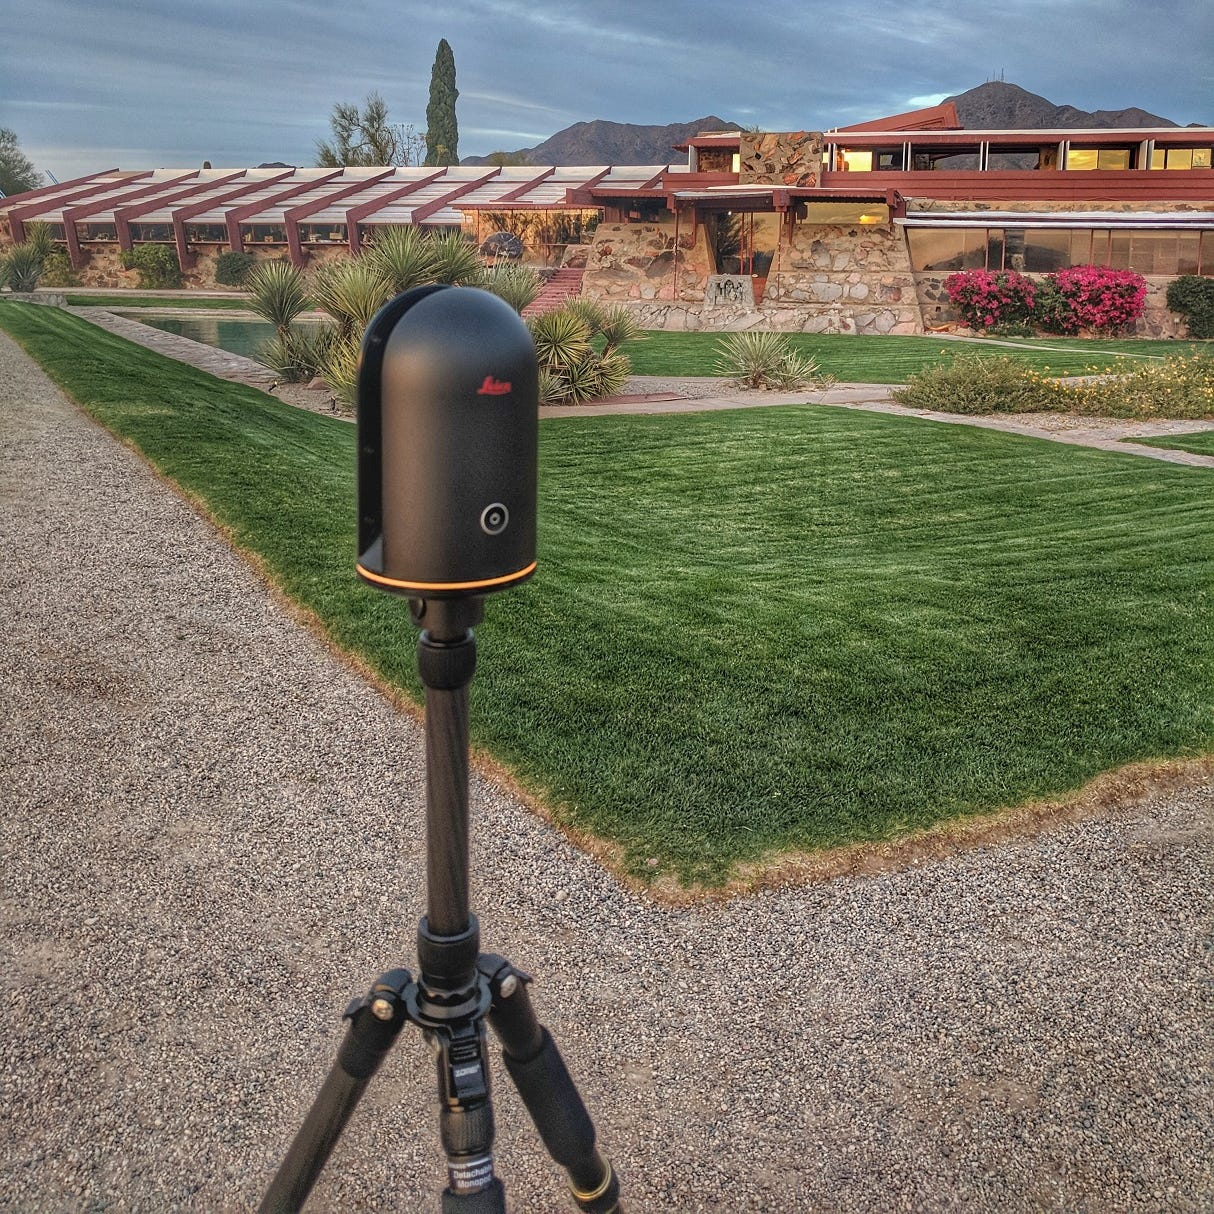 VR tours open up Taliesin West, other Arizona attractions to digital tourism